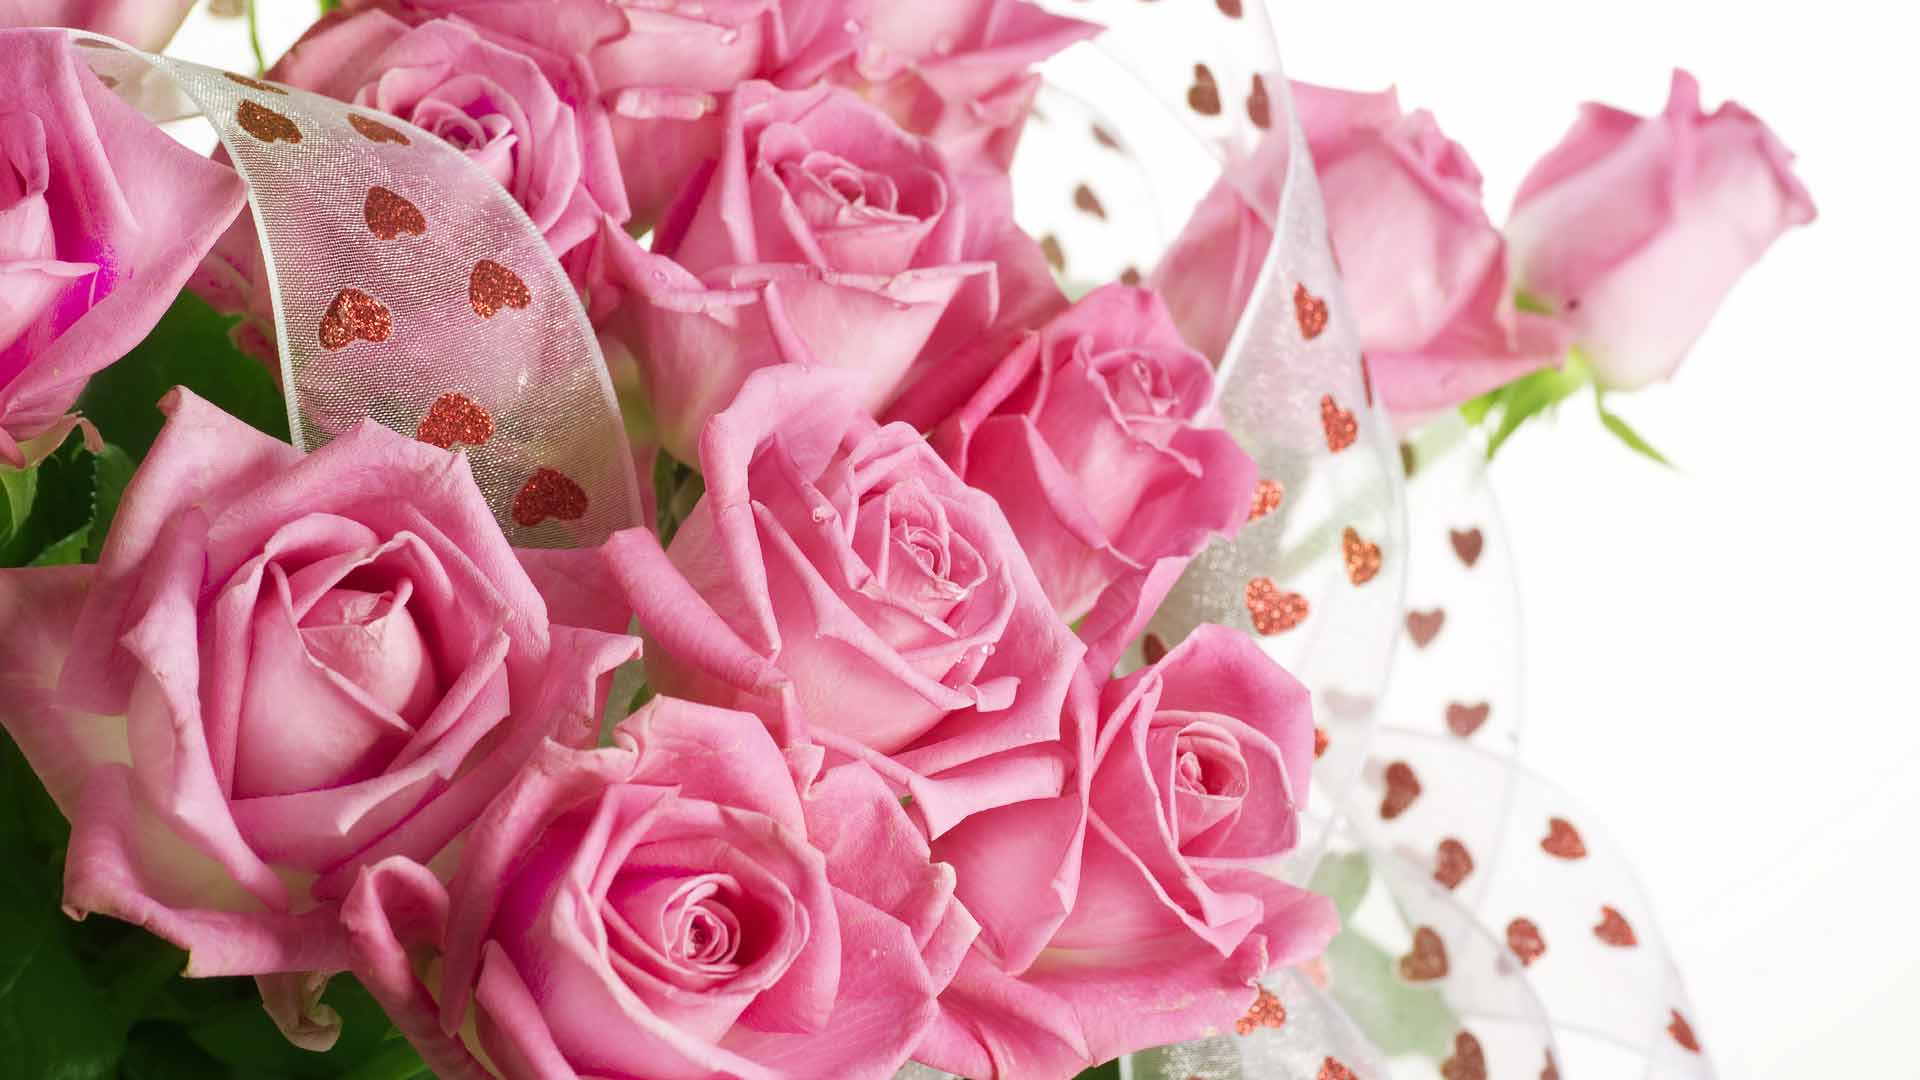 pink-rose-backgrounds-wallpaper-hd-04